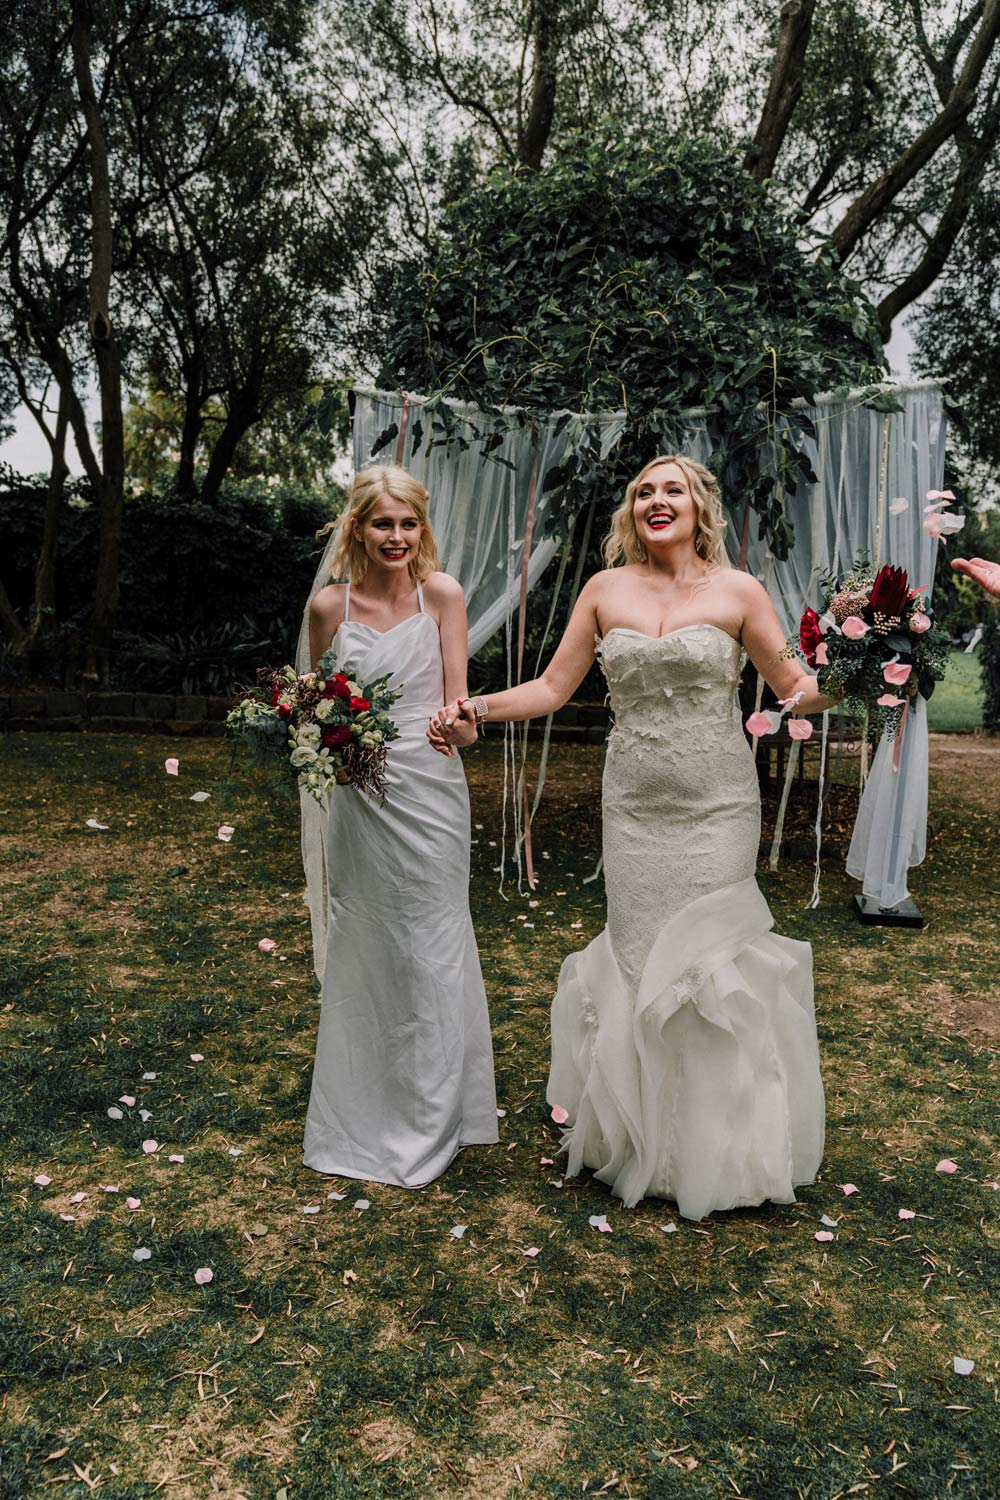 real lesbian wedding in Overnewton Castle showing lesbian bride happily walk down the aisle